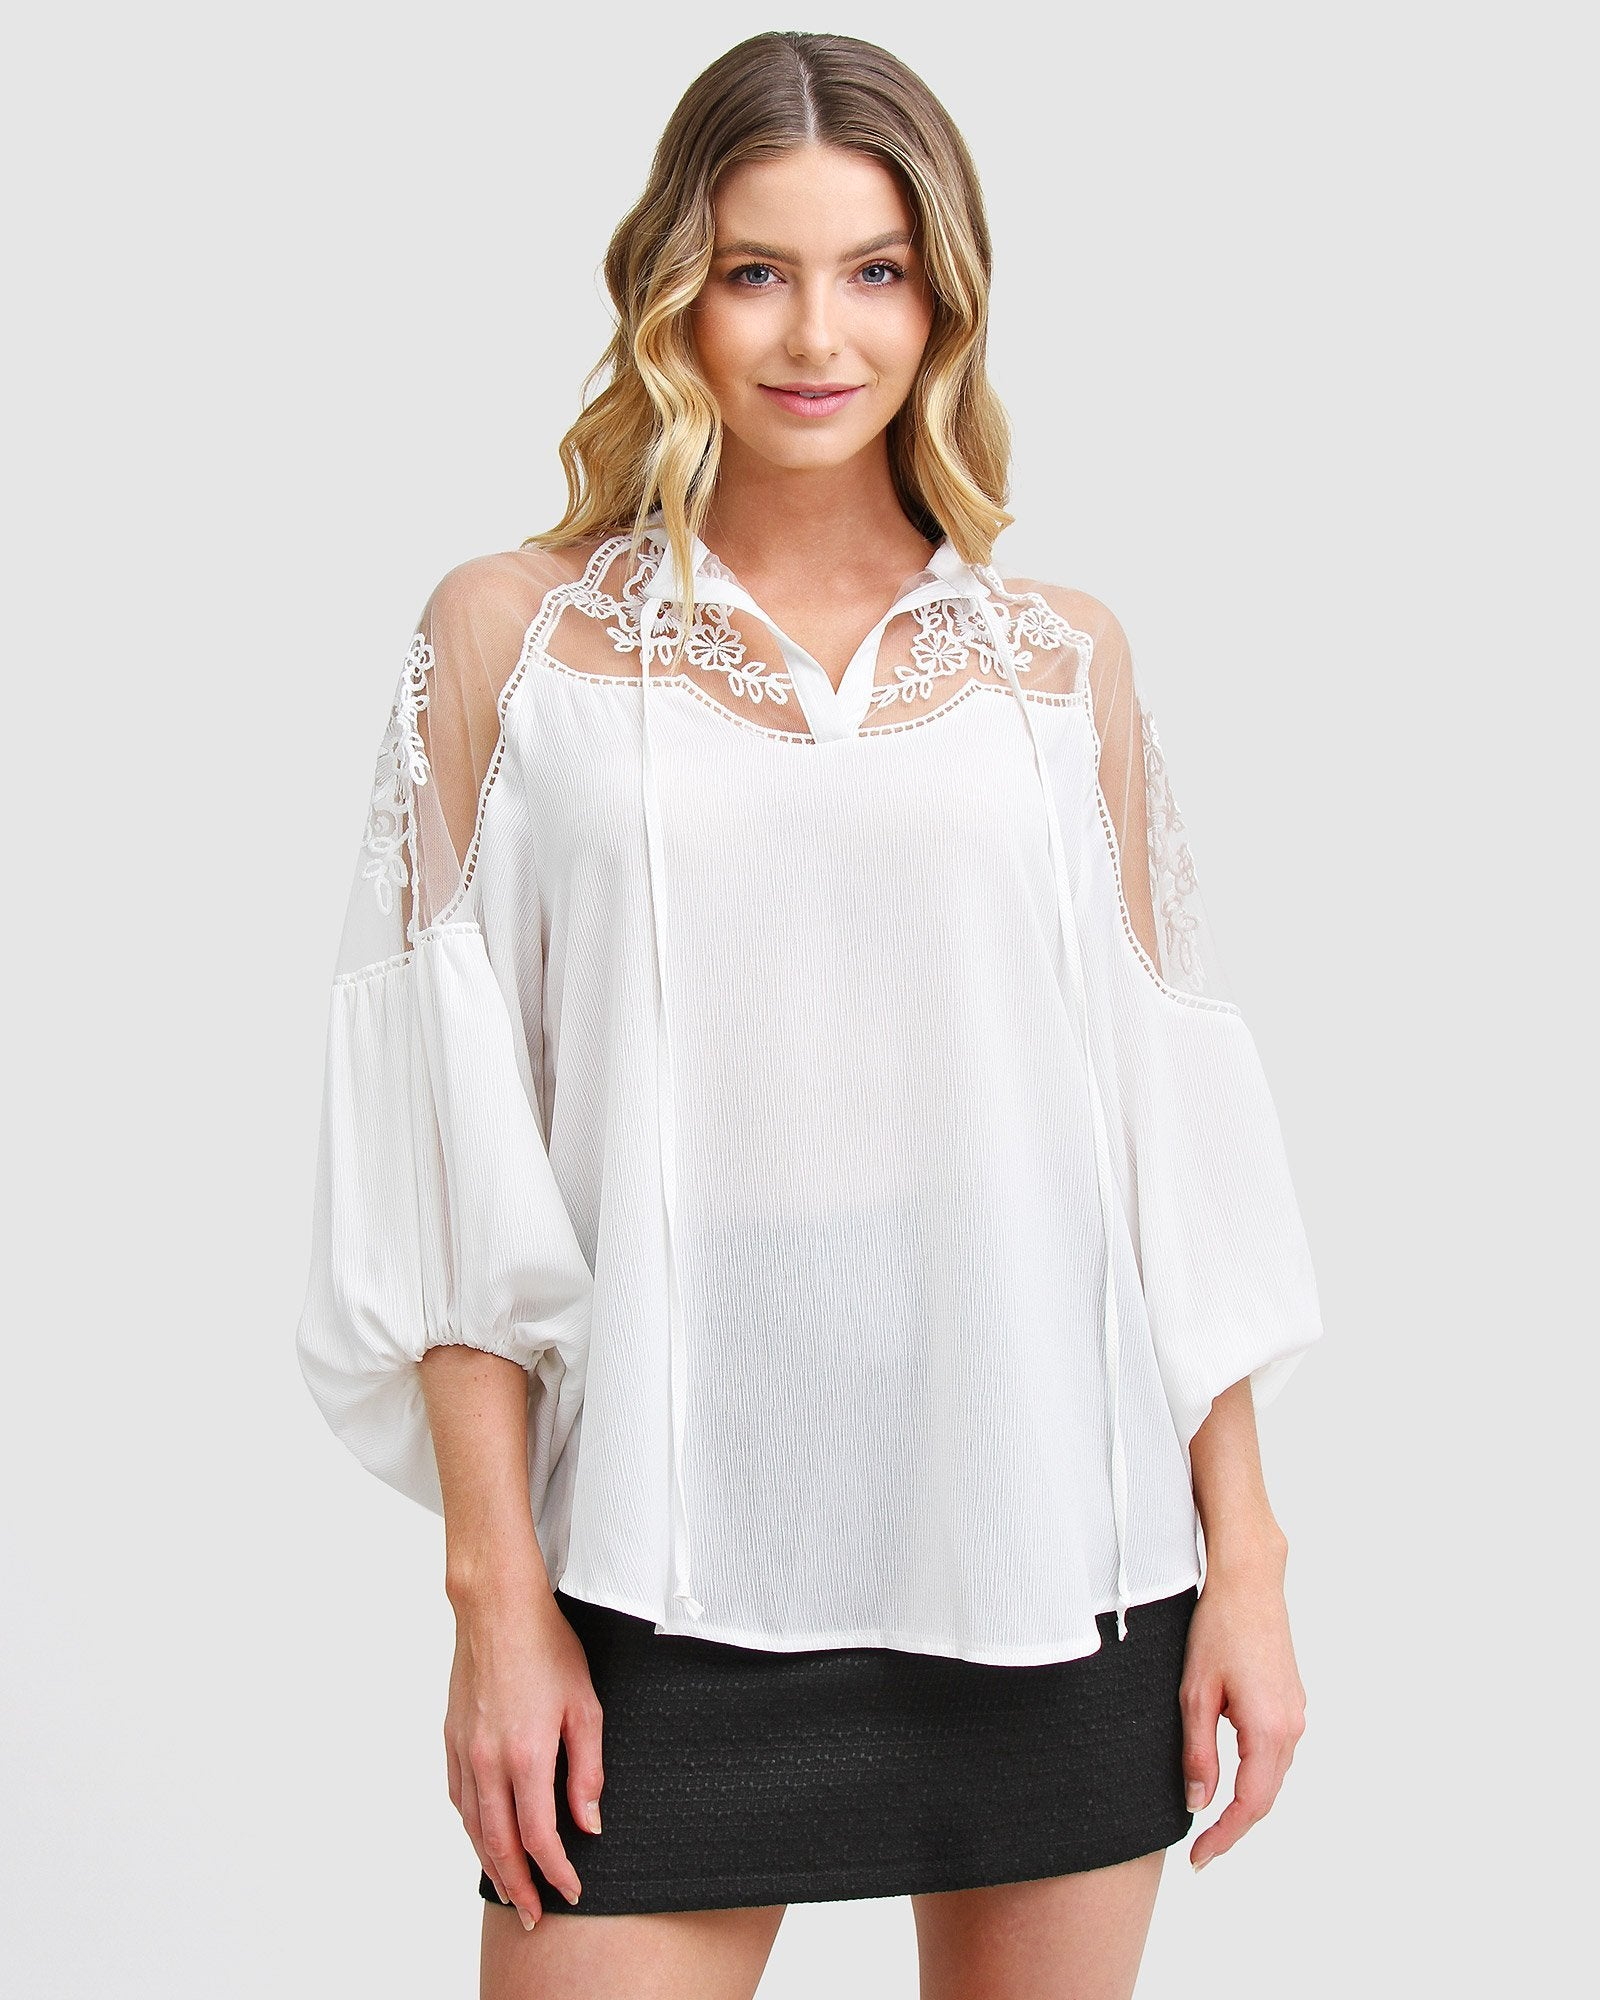 Bronte Afternoon Blouse  - White